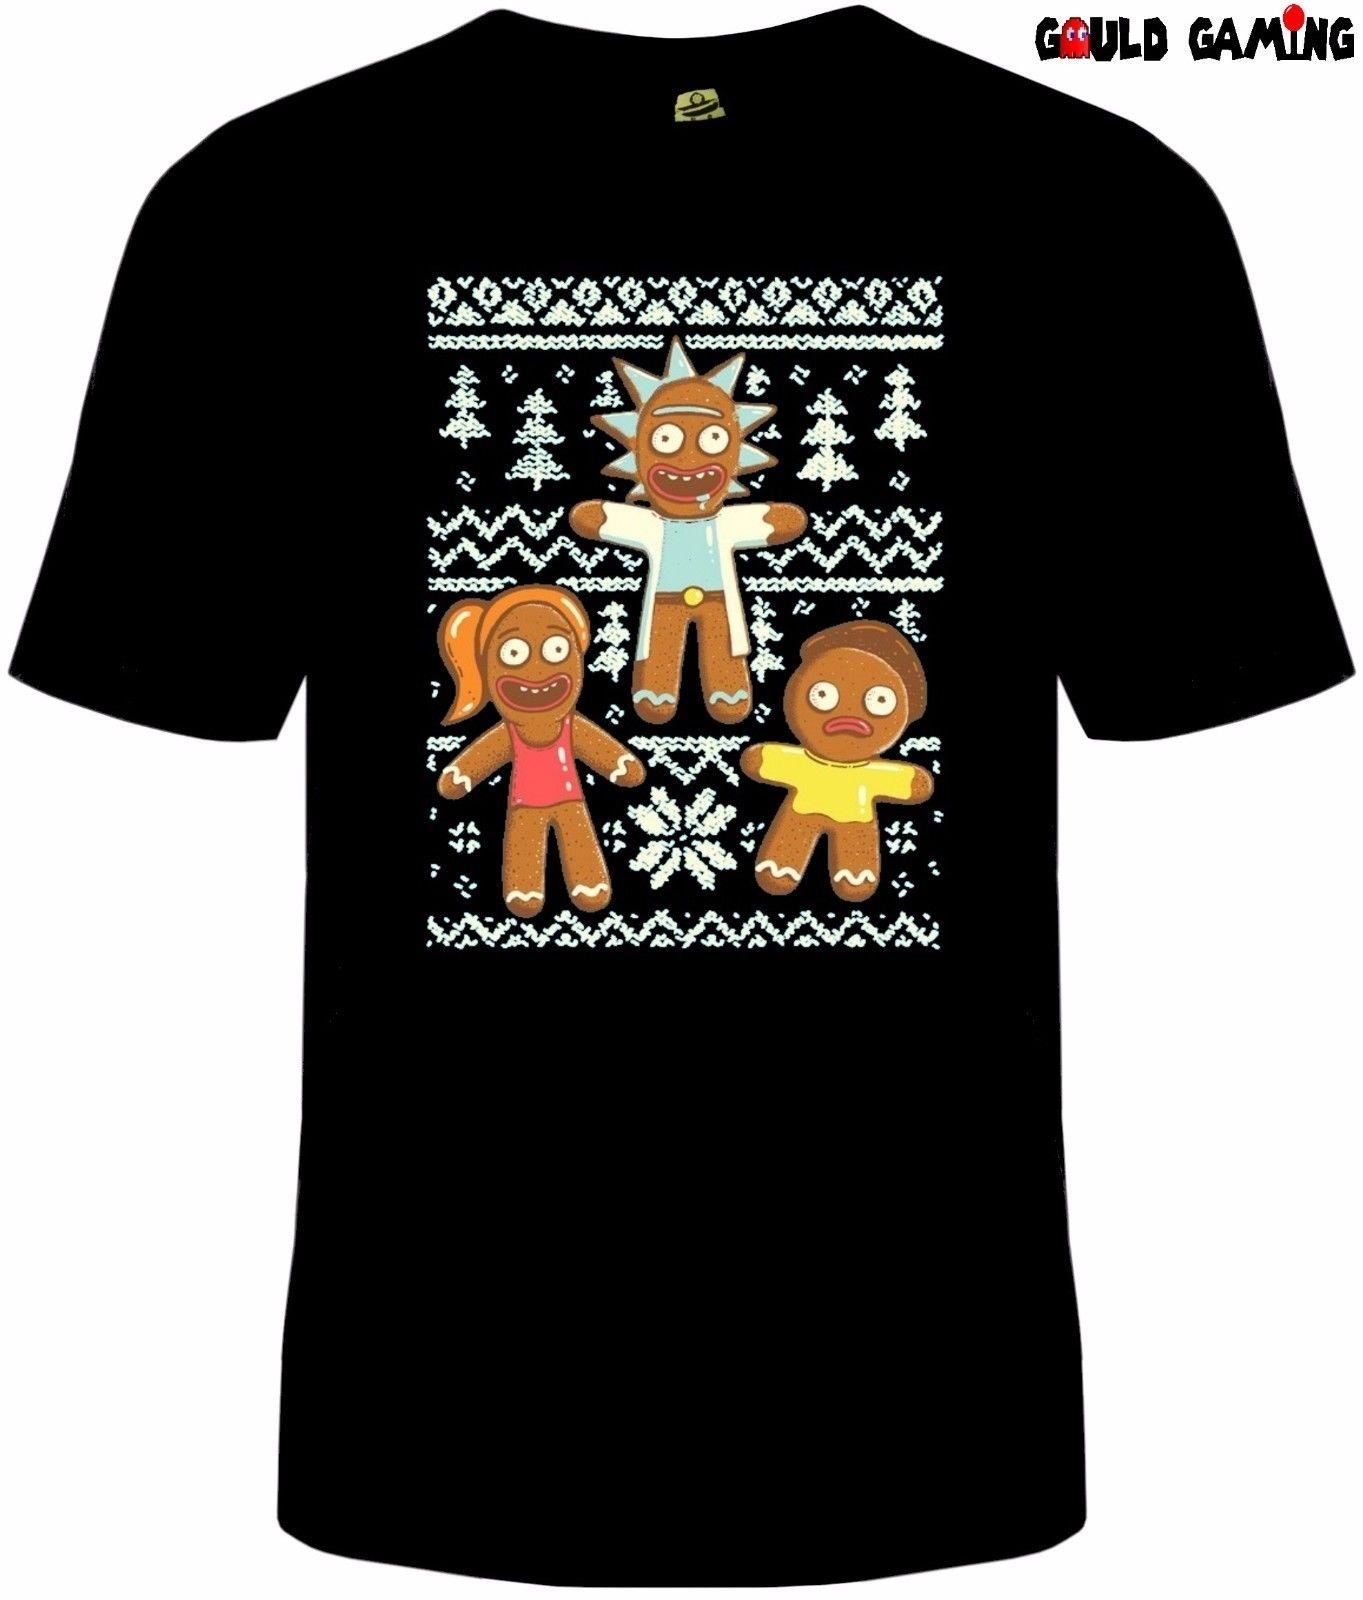 Rick And Morty Christmas Sweater.Rick And Morty Ugly Sweater Christmas T Shirt Funny Tv Unisex Gingerbread New